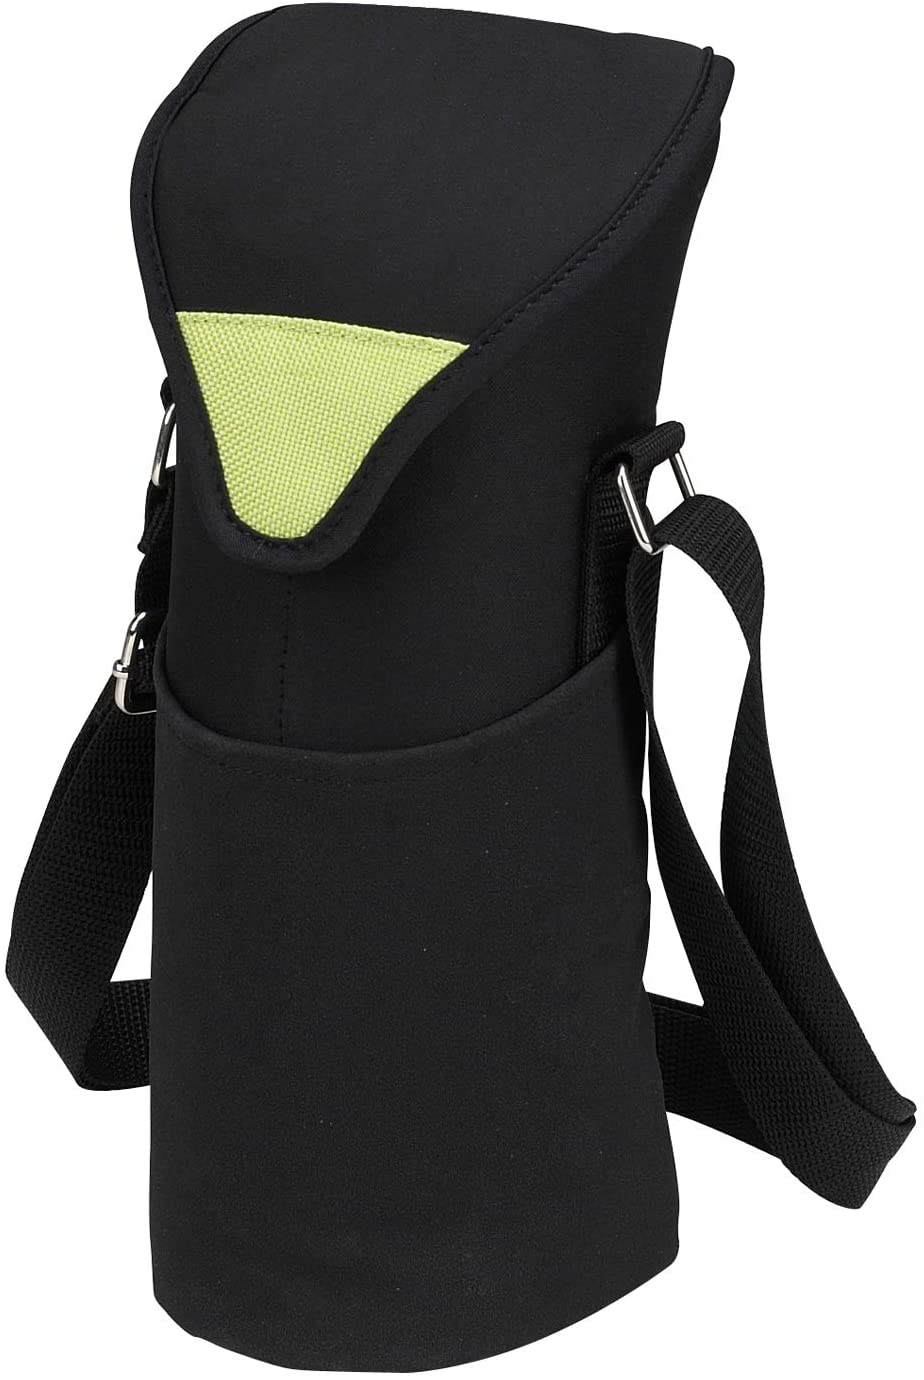 (D) Single Bottle Cooler Tote, Picnic Backpack Bag for Outdoor (Black Green)